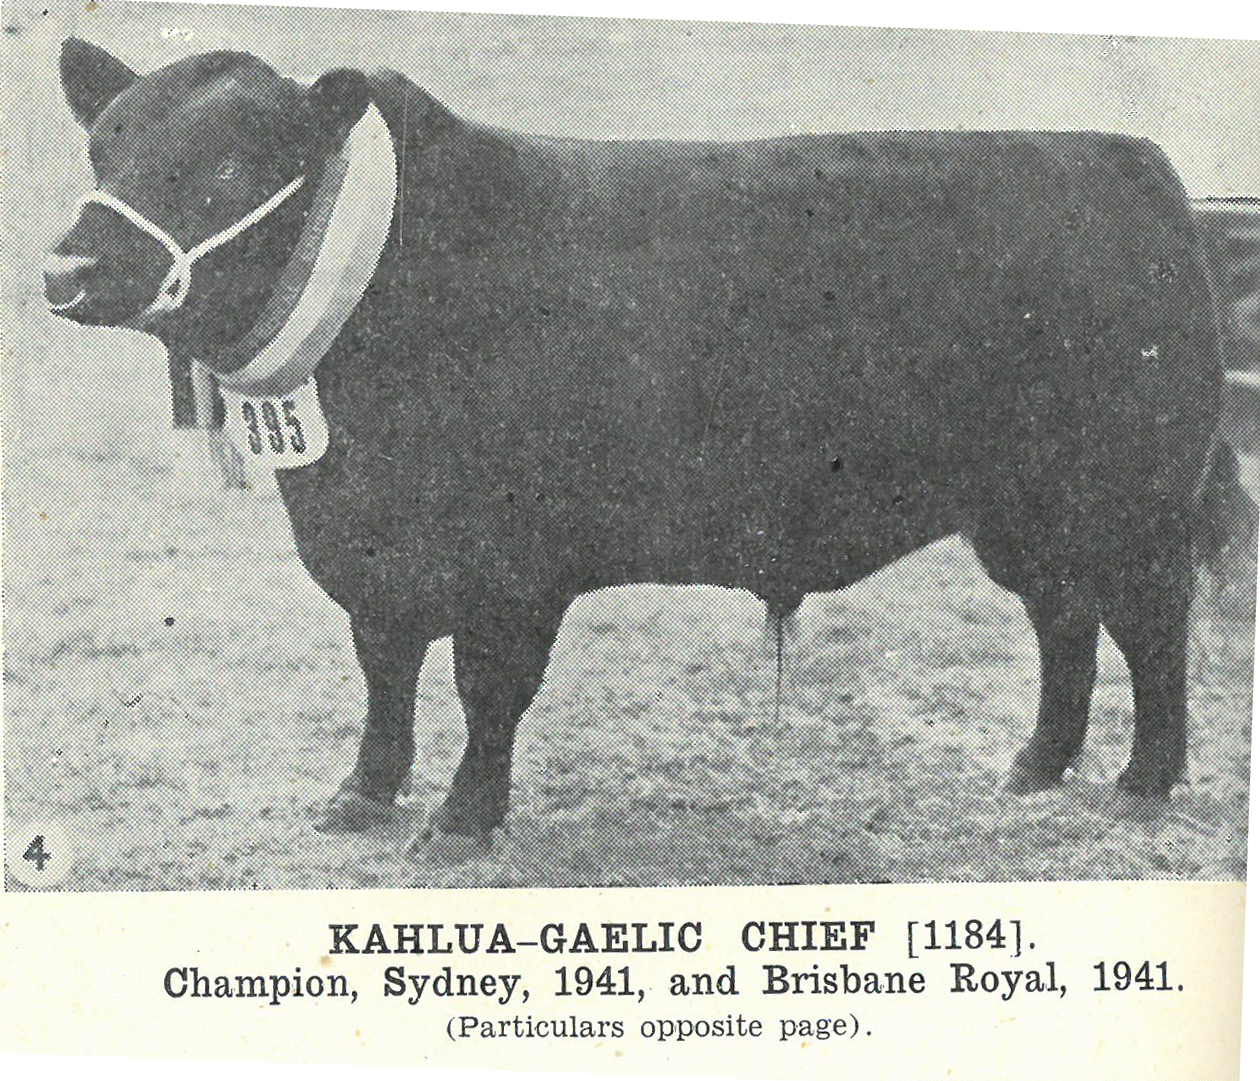 Kahlua-Gaelic Chief